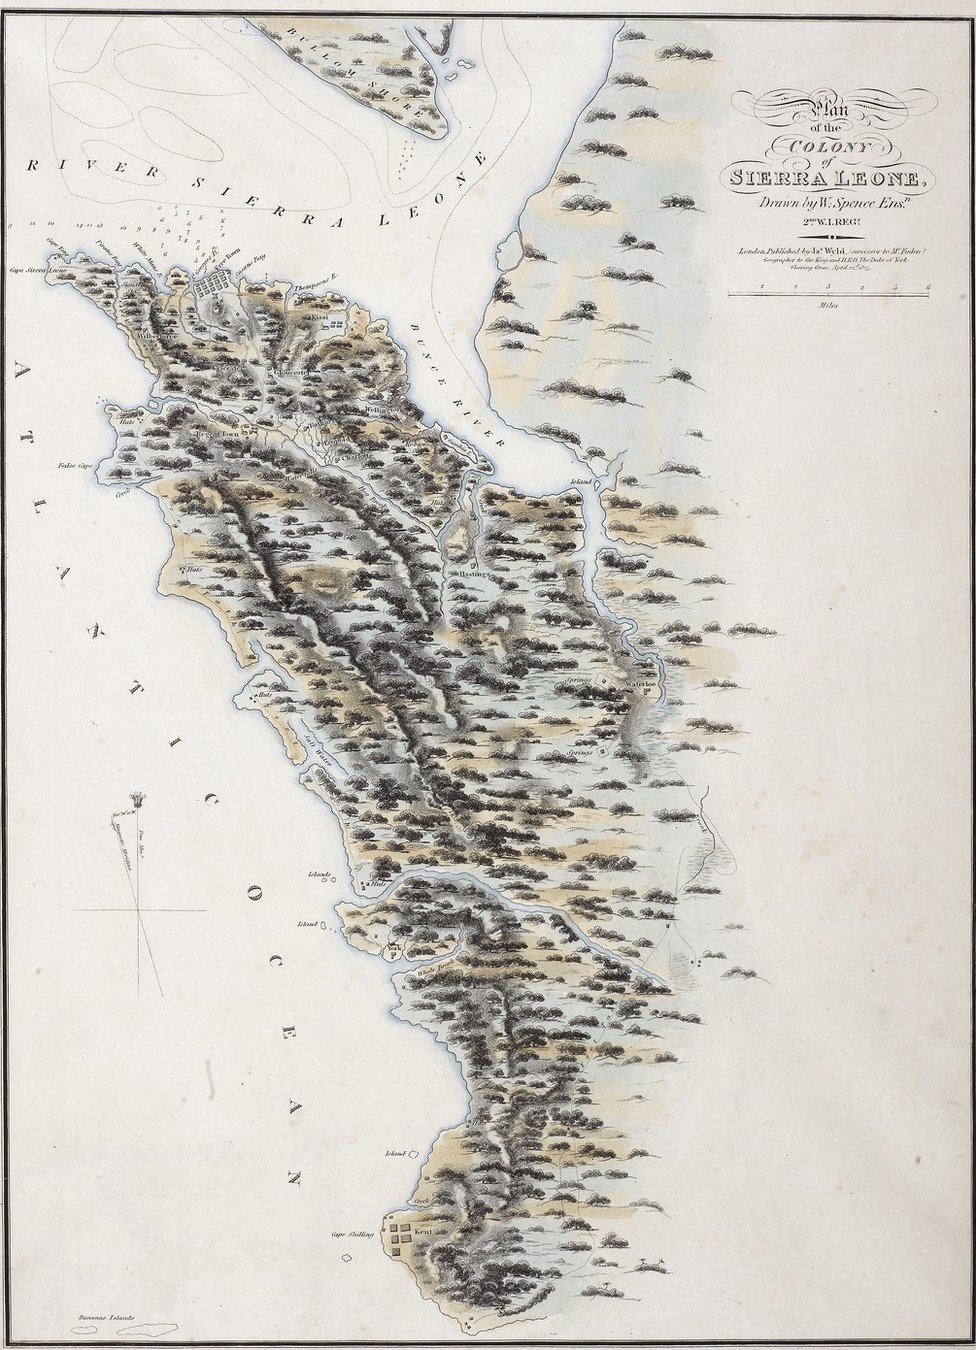 Plan of the Colony of Sierra Leone 1825